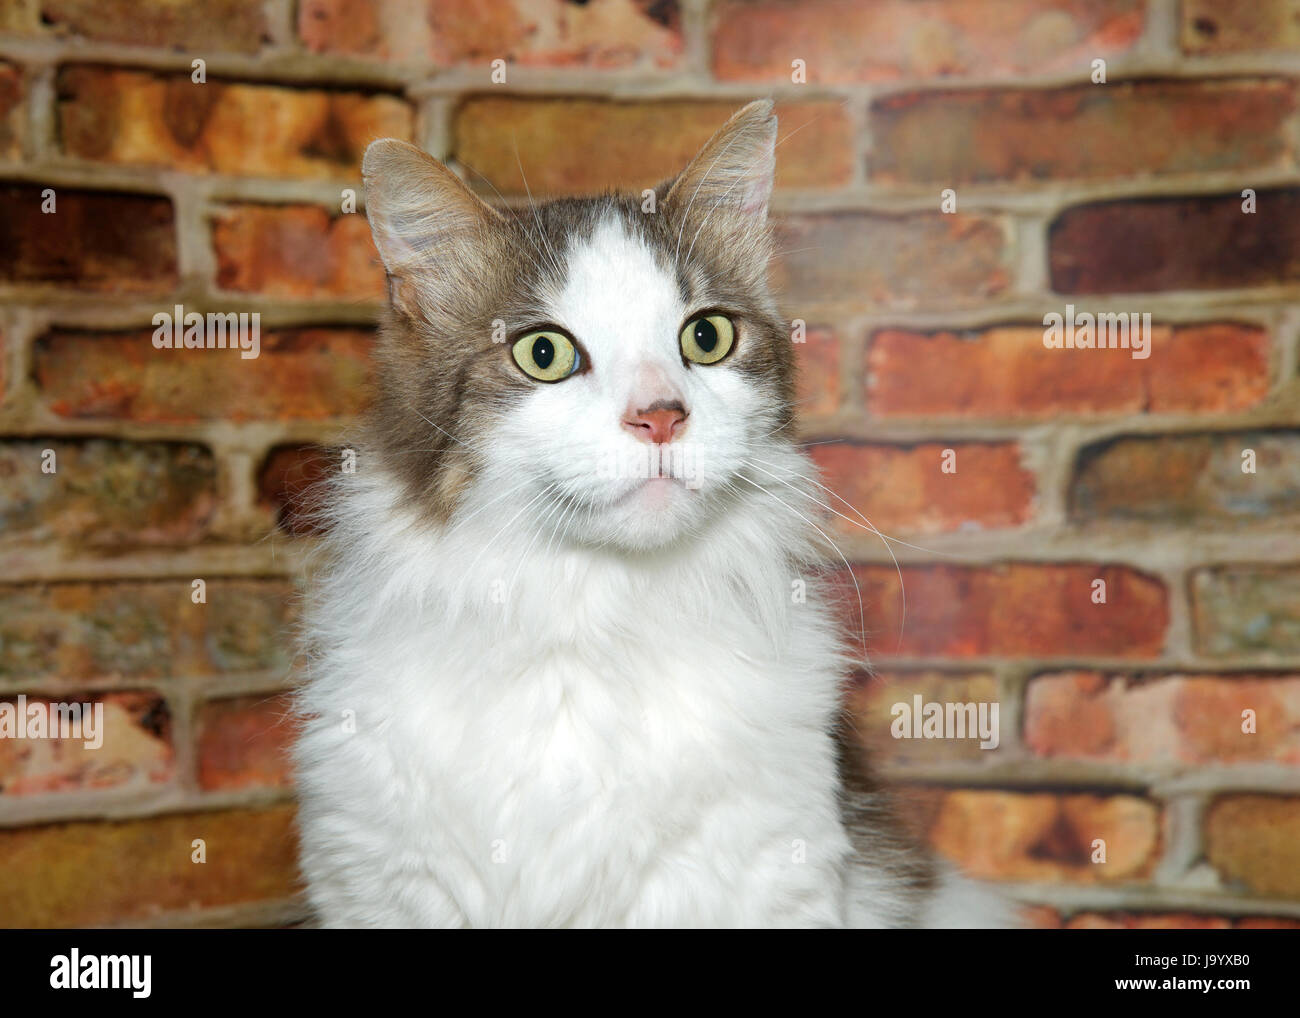 Portrait of  white and tan medium haired tabby cat looking to viewers right. Rusty red brick wall background. - Stock Image